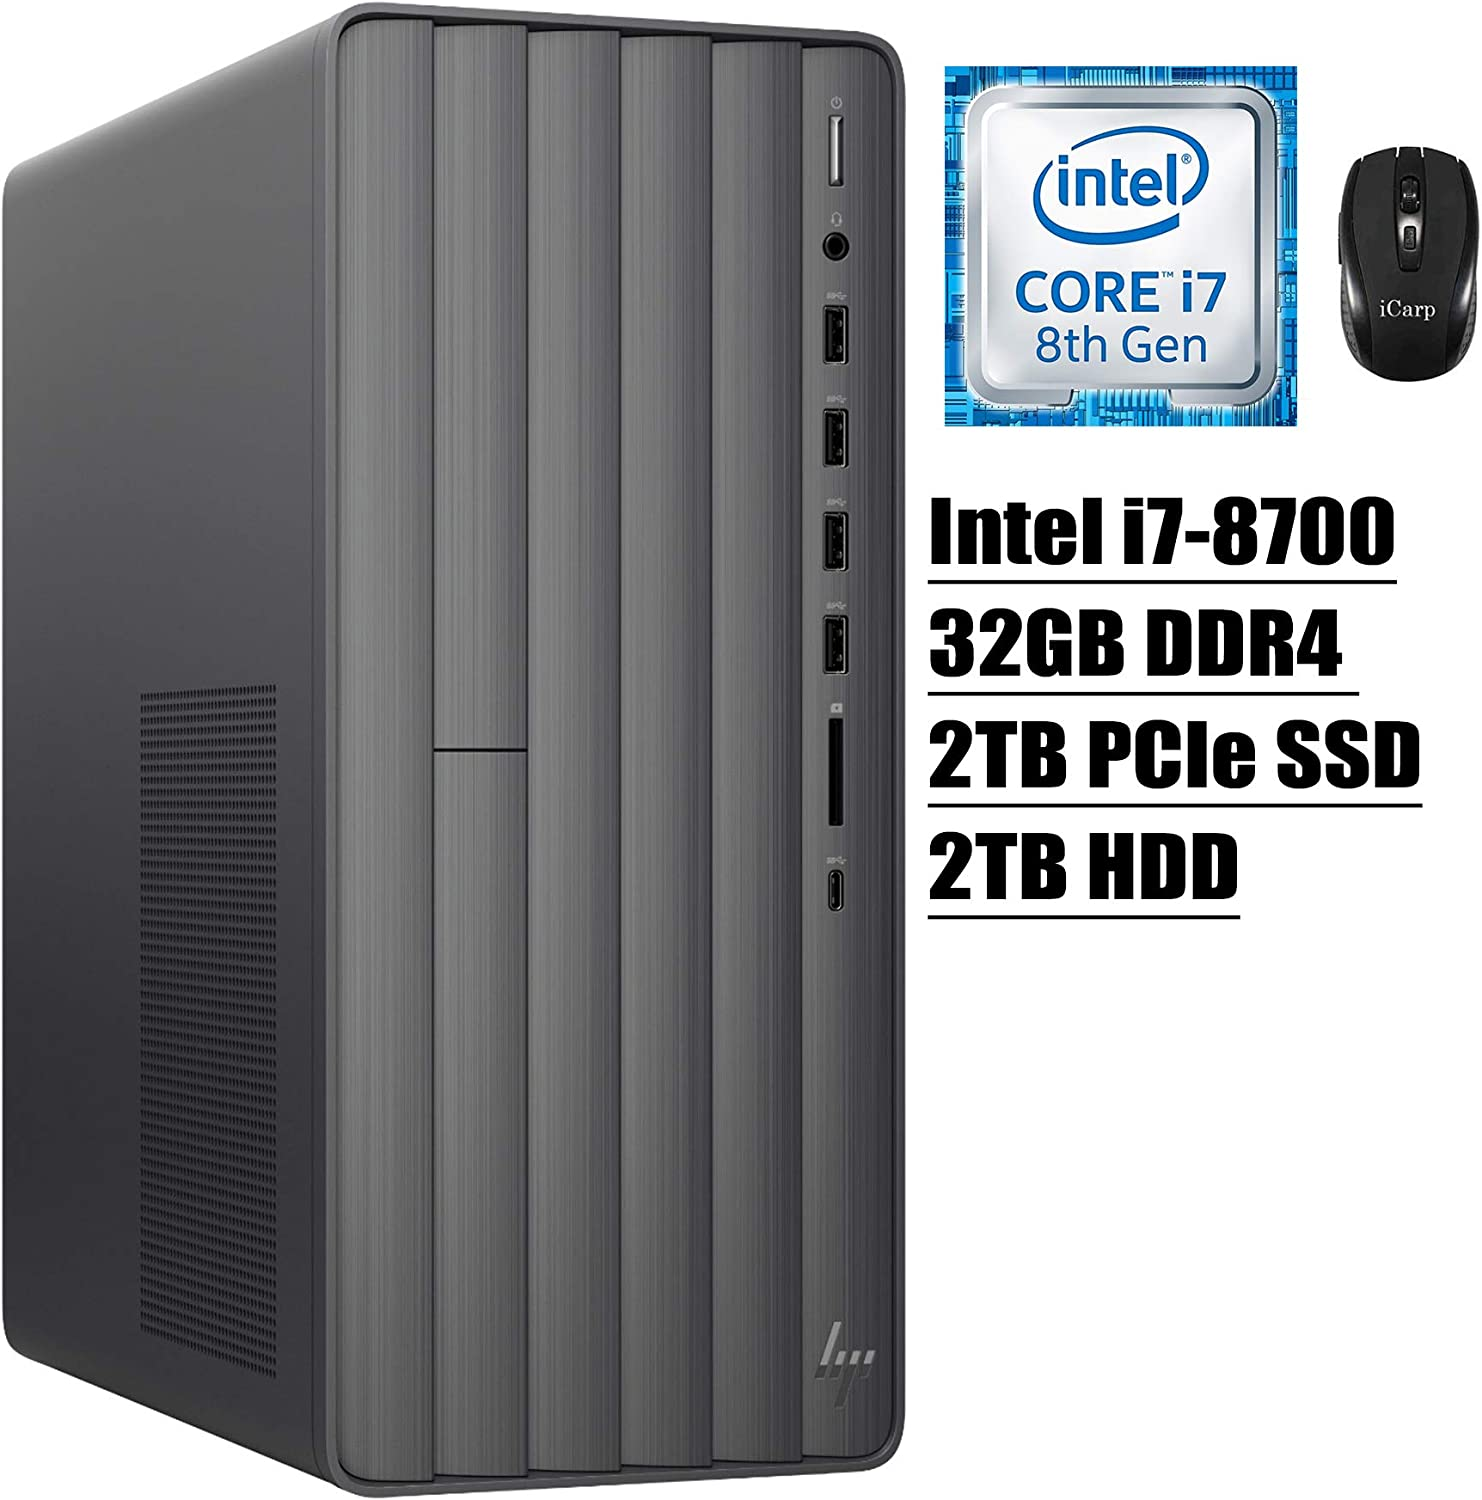 2020 Latest HP Envy Desktop High Performance Entertainment Computer 8th Gen Intel Hexa-Core i7-8700 up to 4.6GHz 32GB DDR4 2TB PCIe SSD 2TB HDD WiFi Type-C DVD-RW Win 10 + iCarp Wireless Mouse